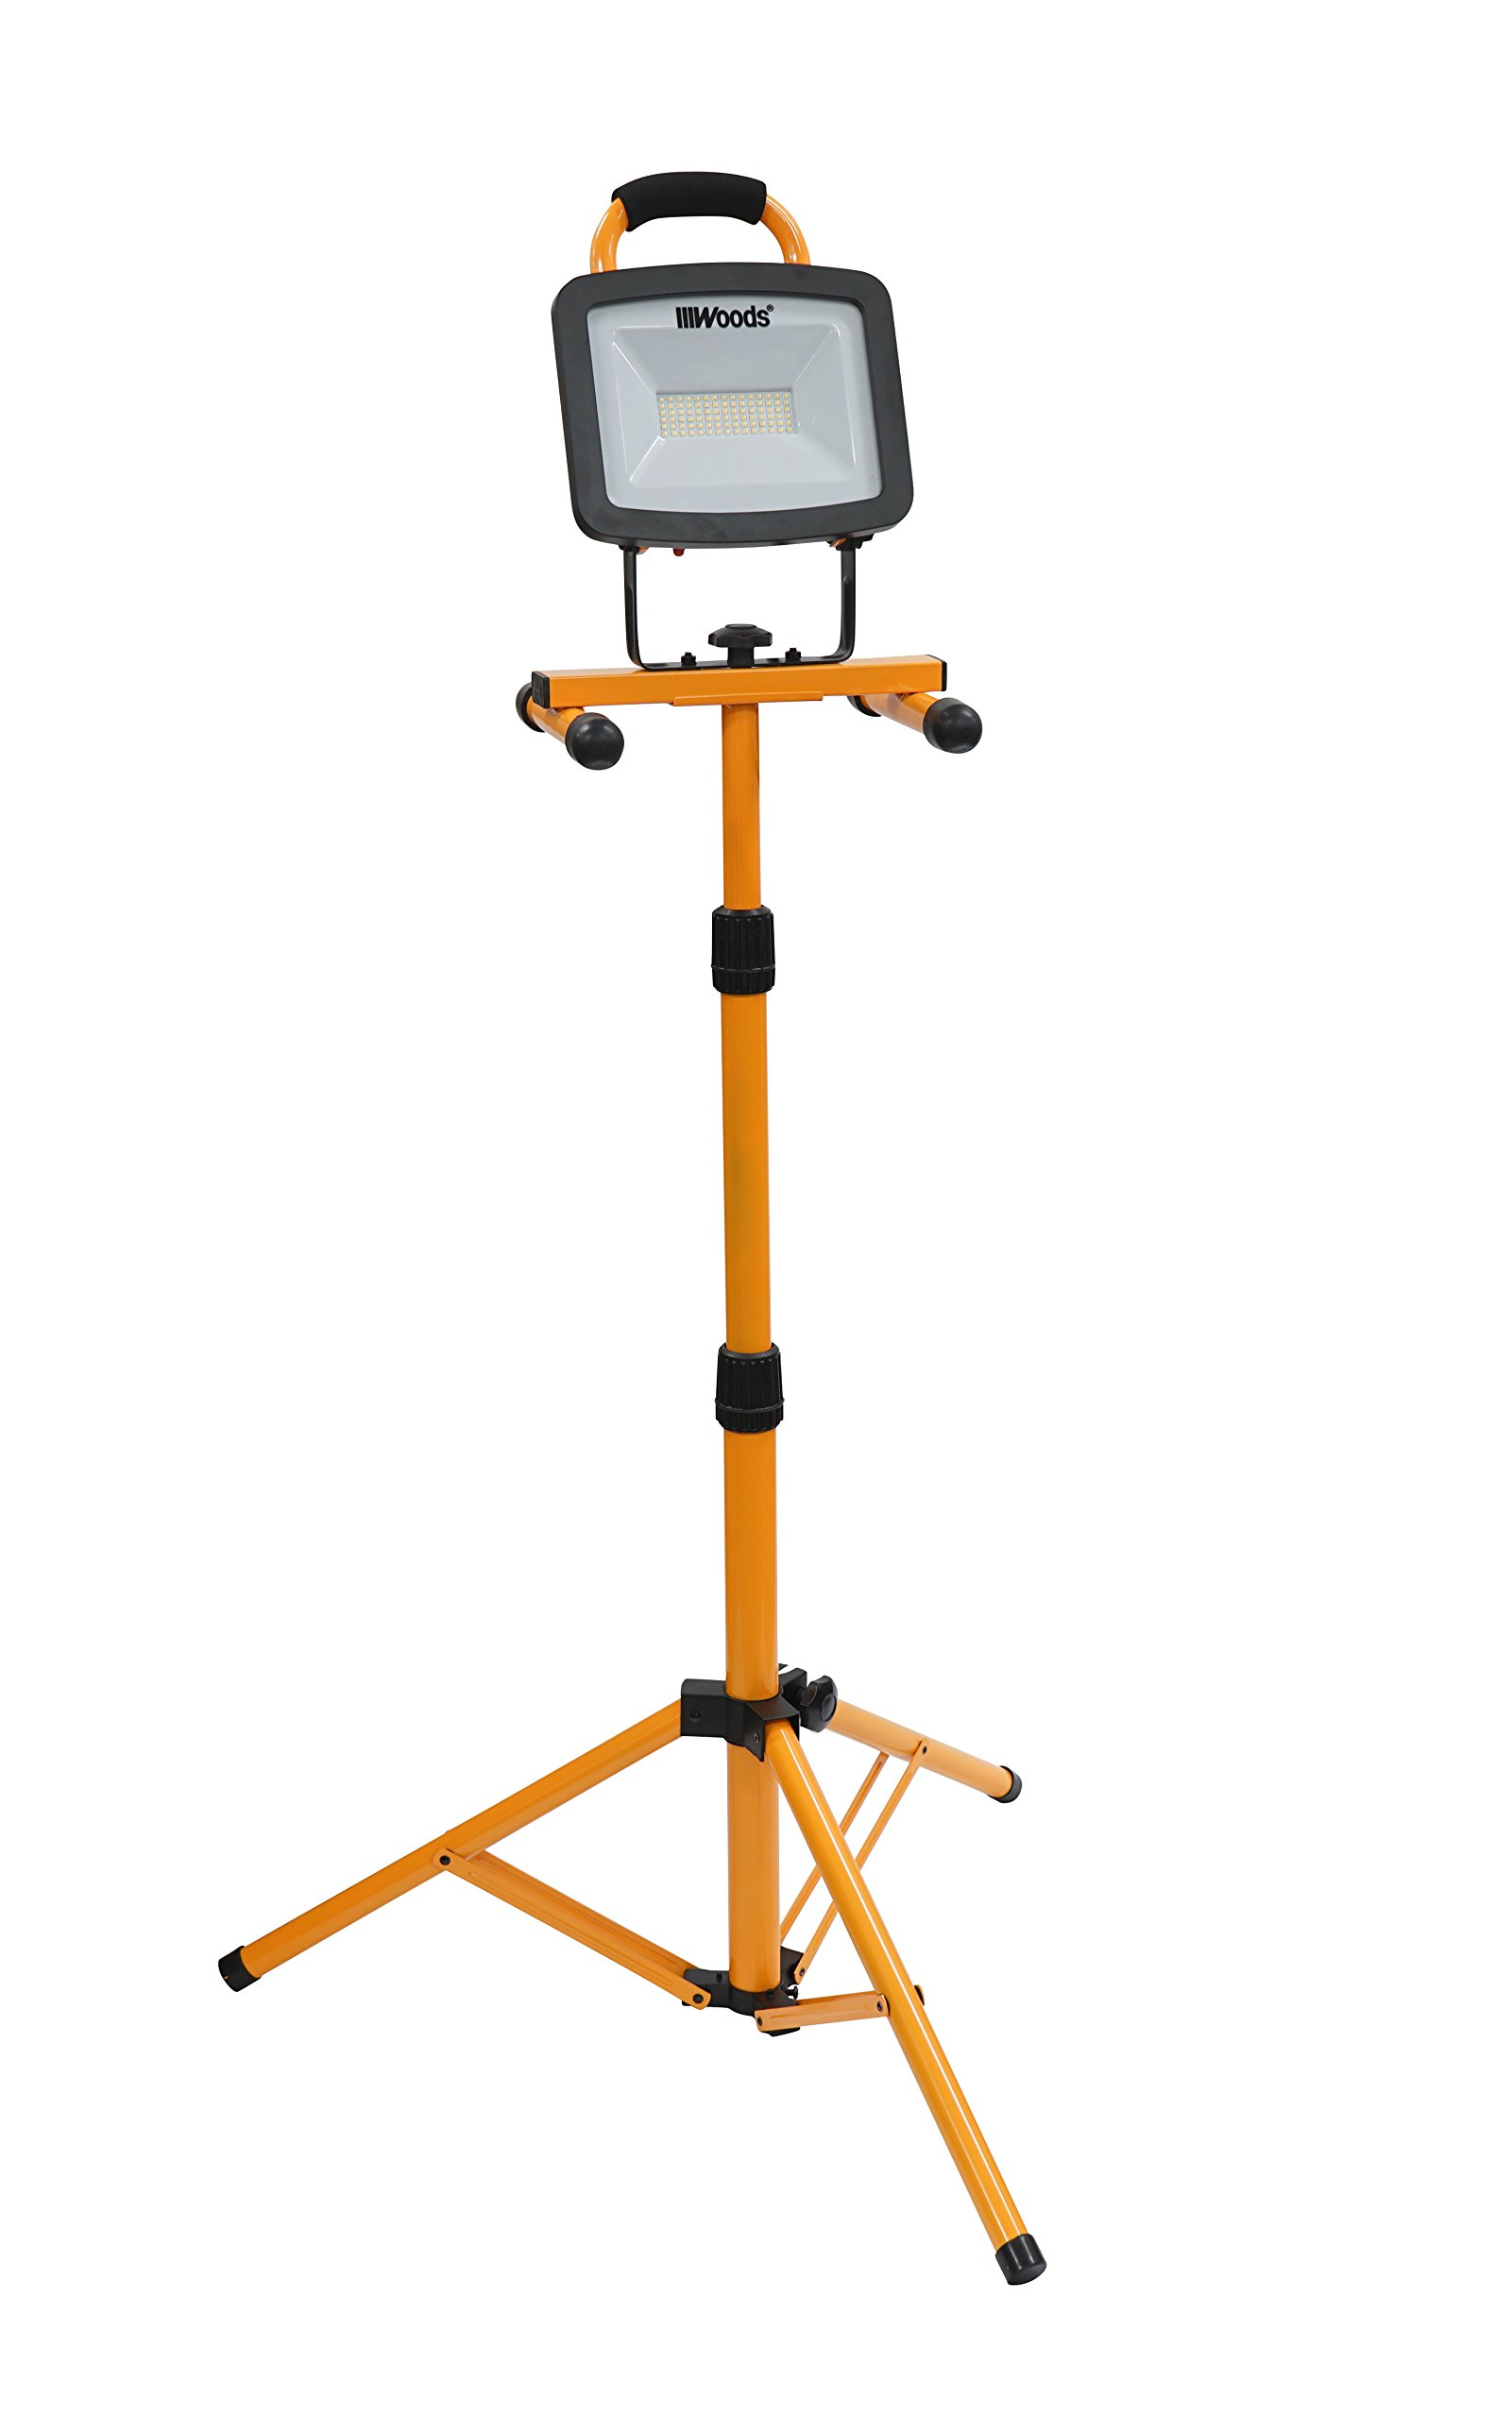 Woods WL40072S Portable Led Work Light On Steel Tripod, 6600 Lumens, 72 Watts, 4000 Kelvin, 5 Foot Cord, Orange/Black